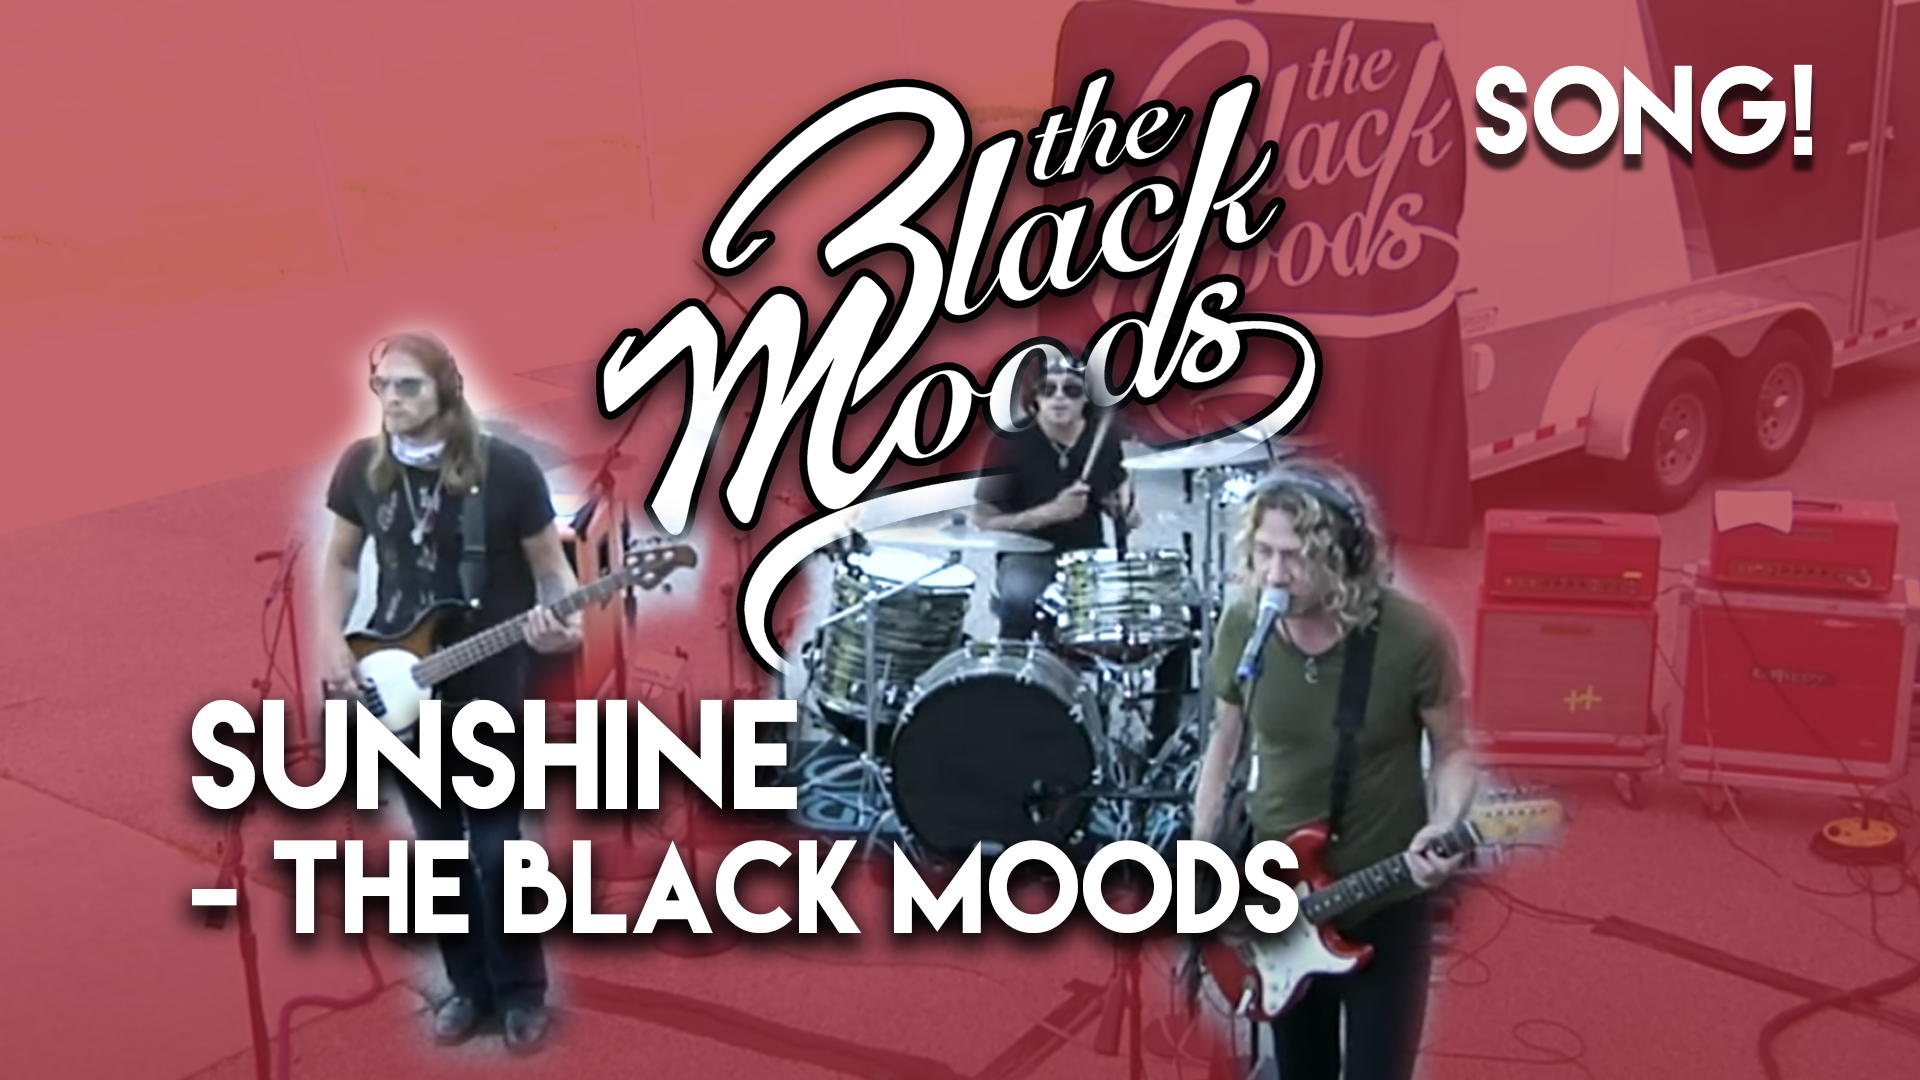 Sunshine by The Black Moods